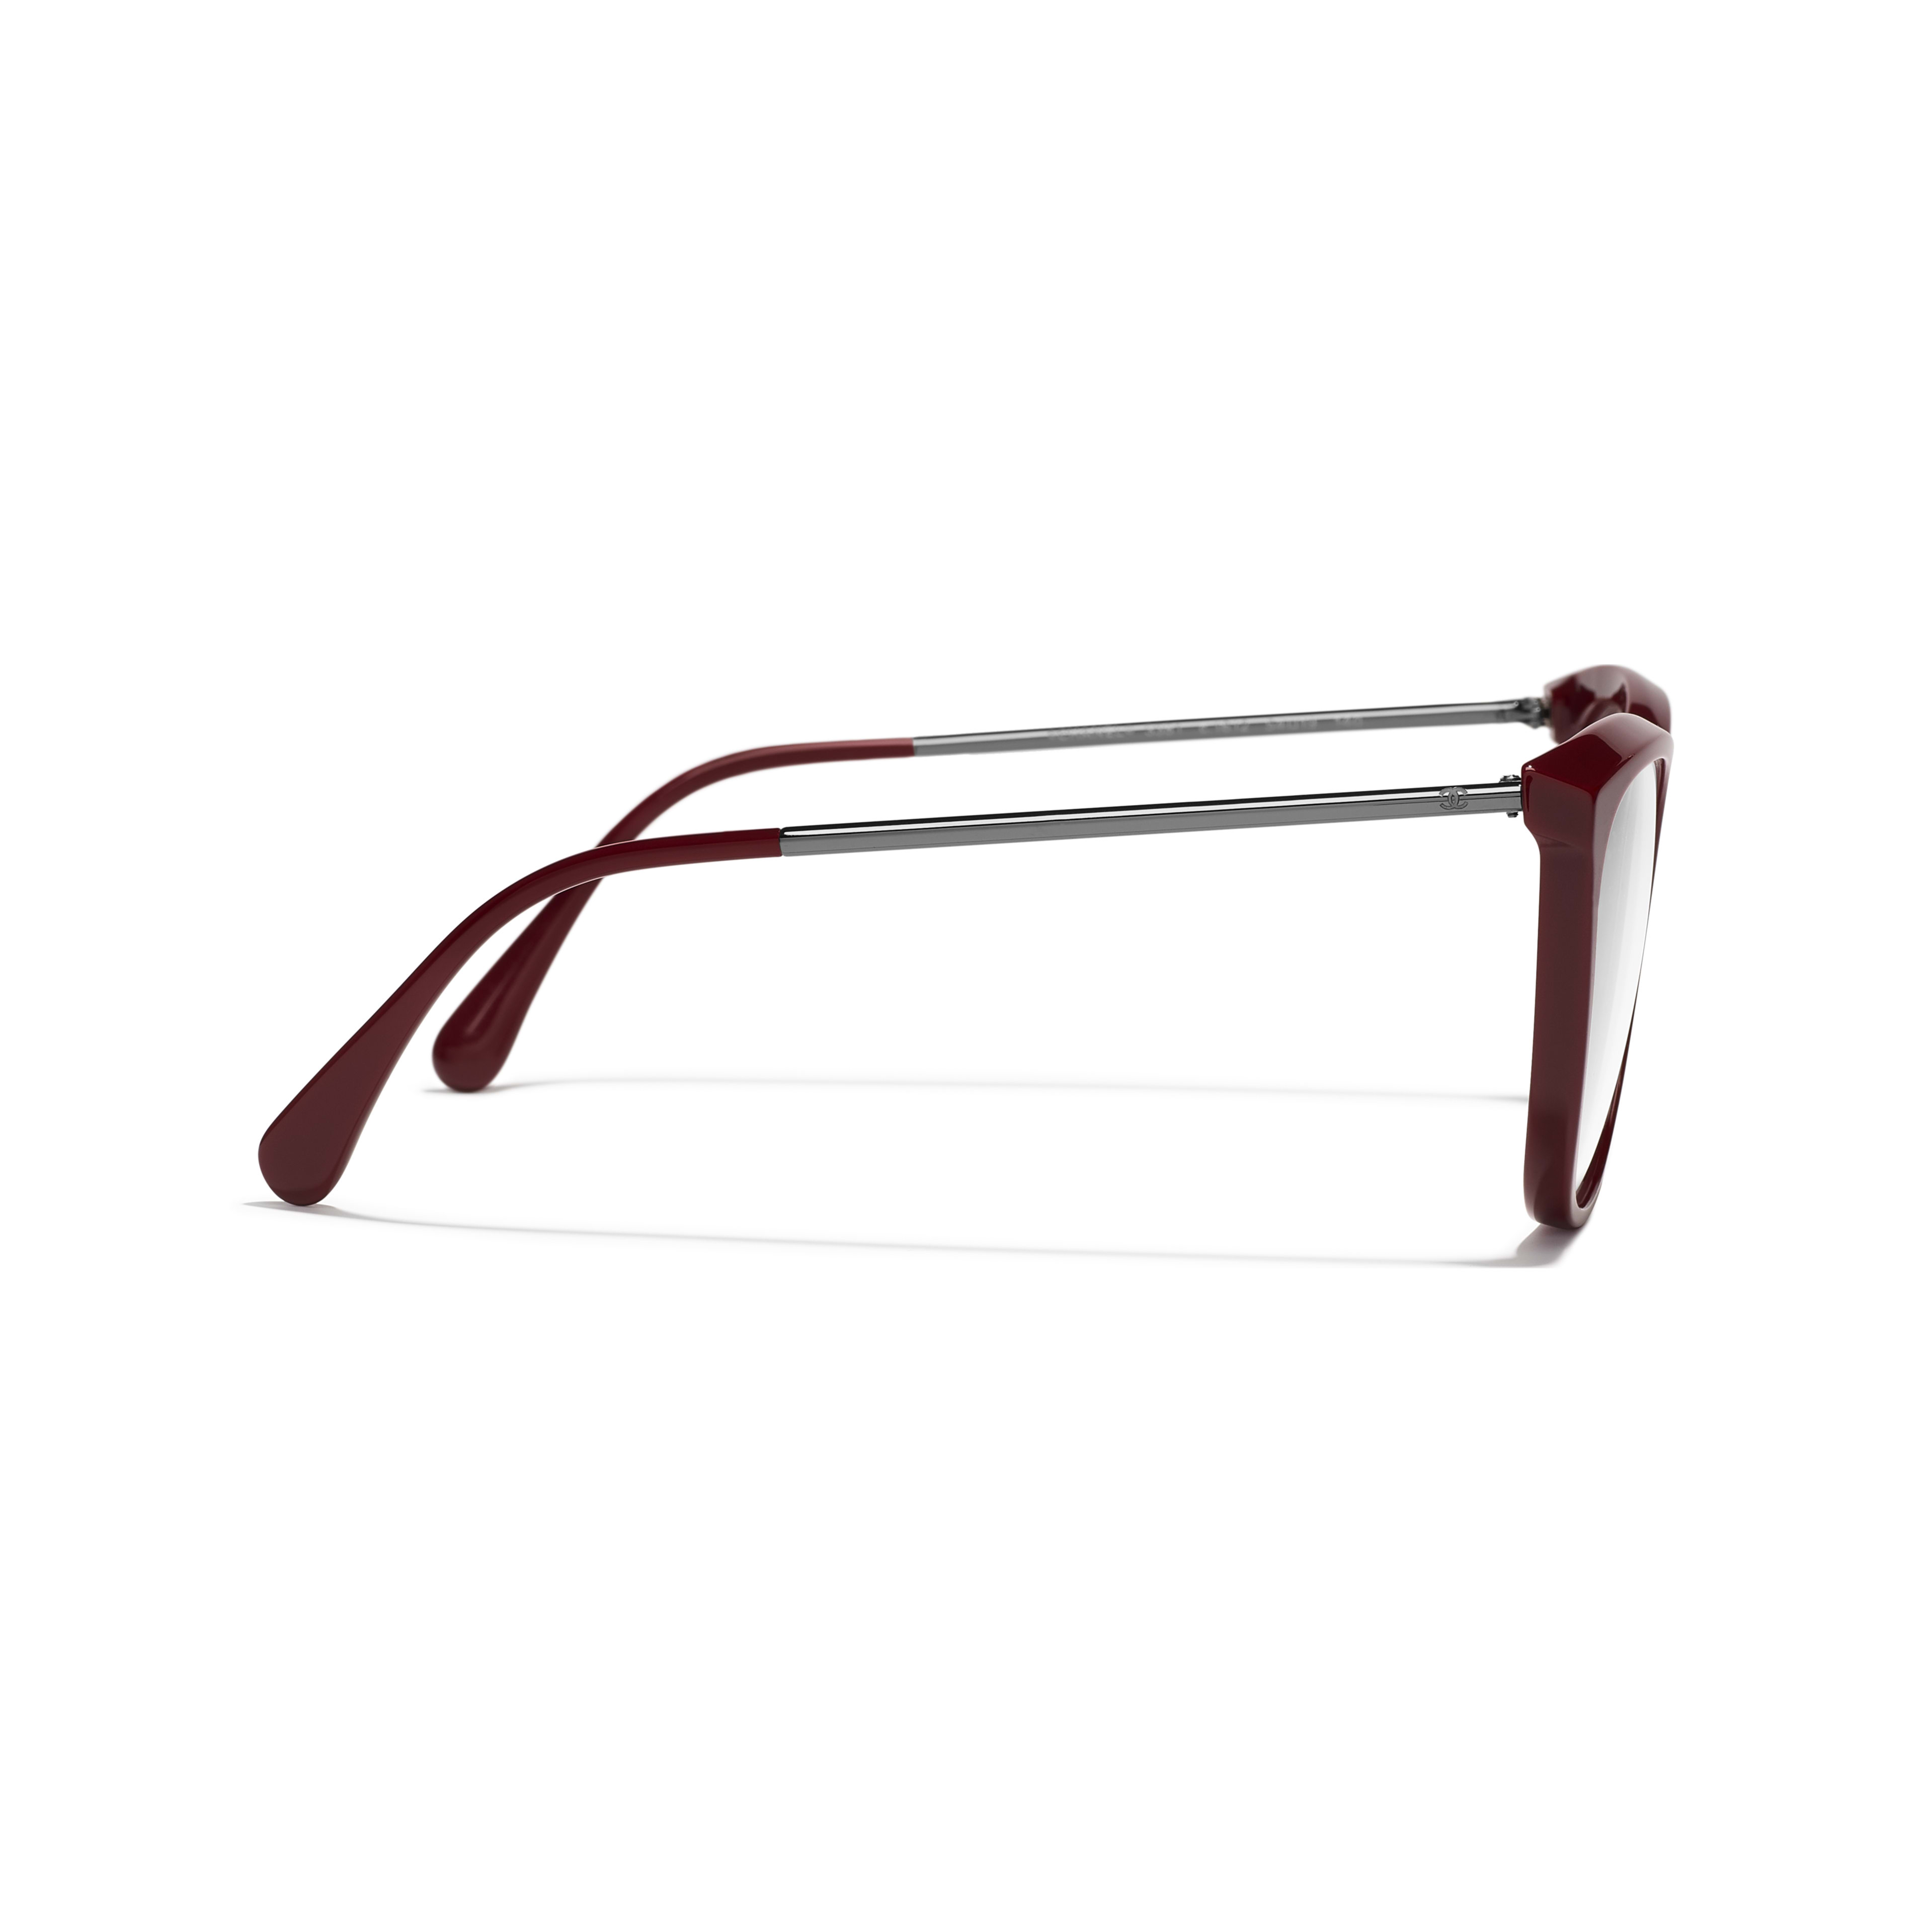 Butterfly Eyeglasses - Dark Red - Acetate & Metal - Other view - see full sized version